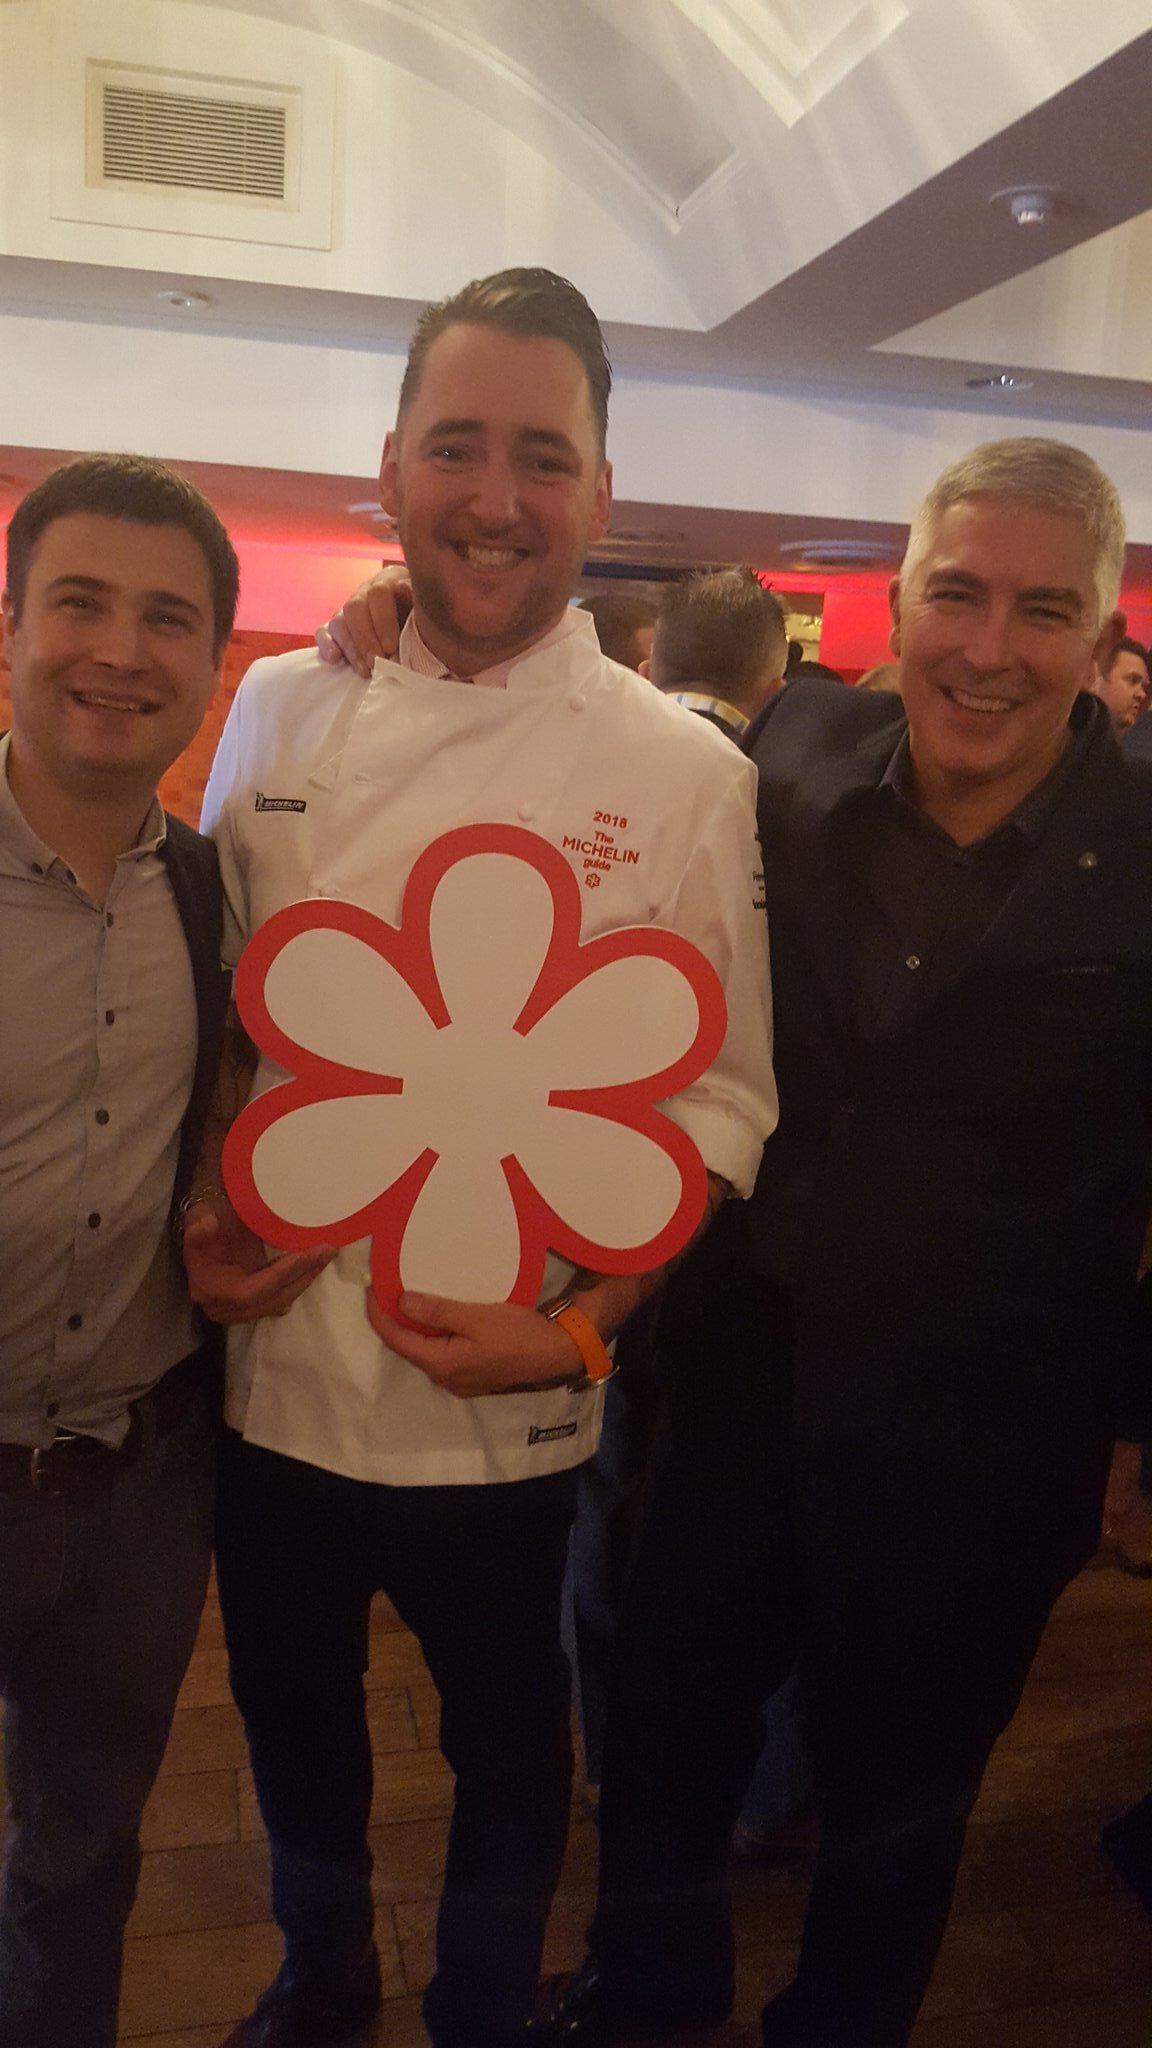 George Blogg (left) supporting Matt Worswick as he accepts a Michelin star for the Latymer Restaurant team. David Everitt-Matthias looks on with huge admiration and totally justified pride. A favourite picture.